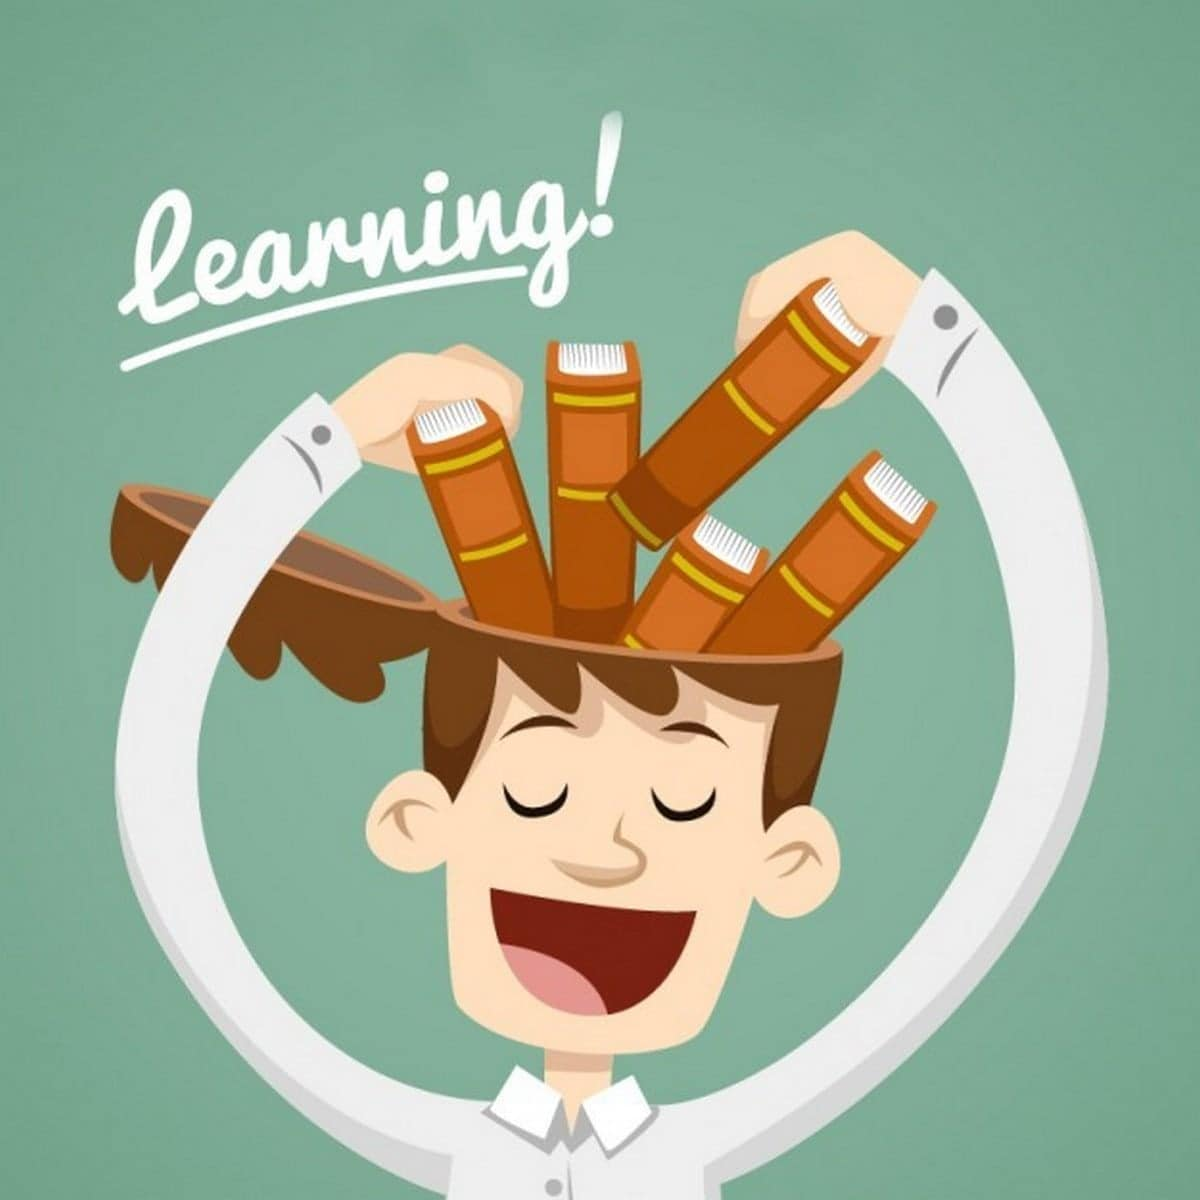 7 Types Of Learner Based on Method of Learning